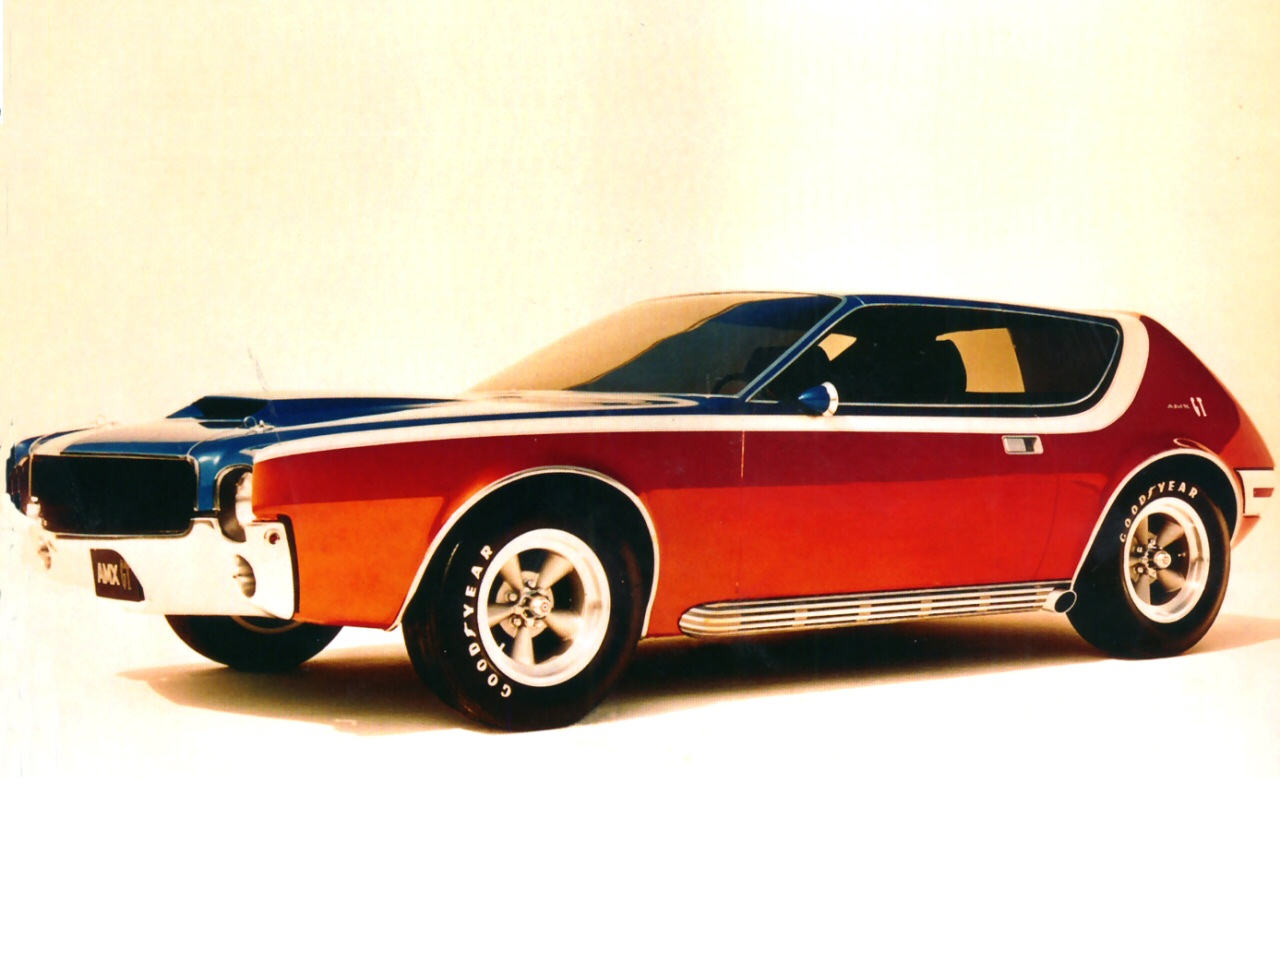 Amc amx photo - 3